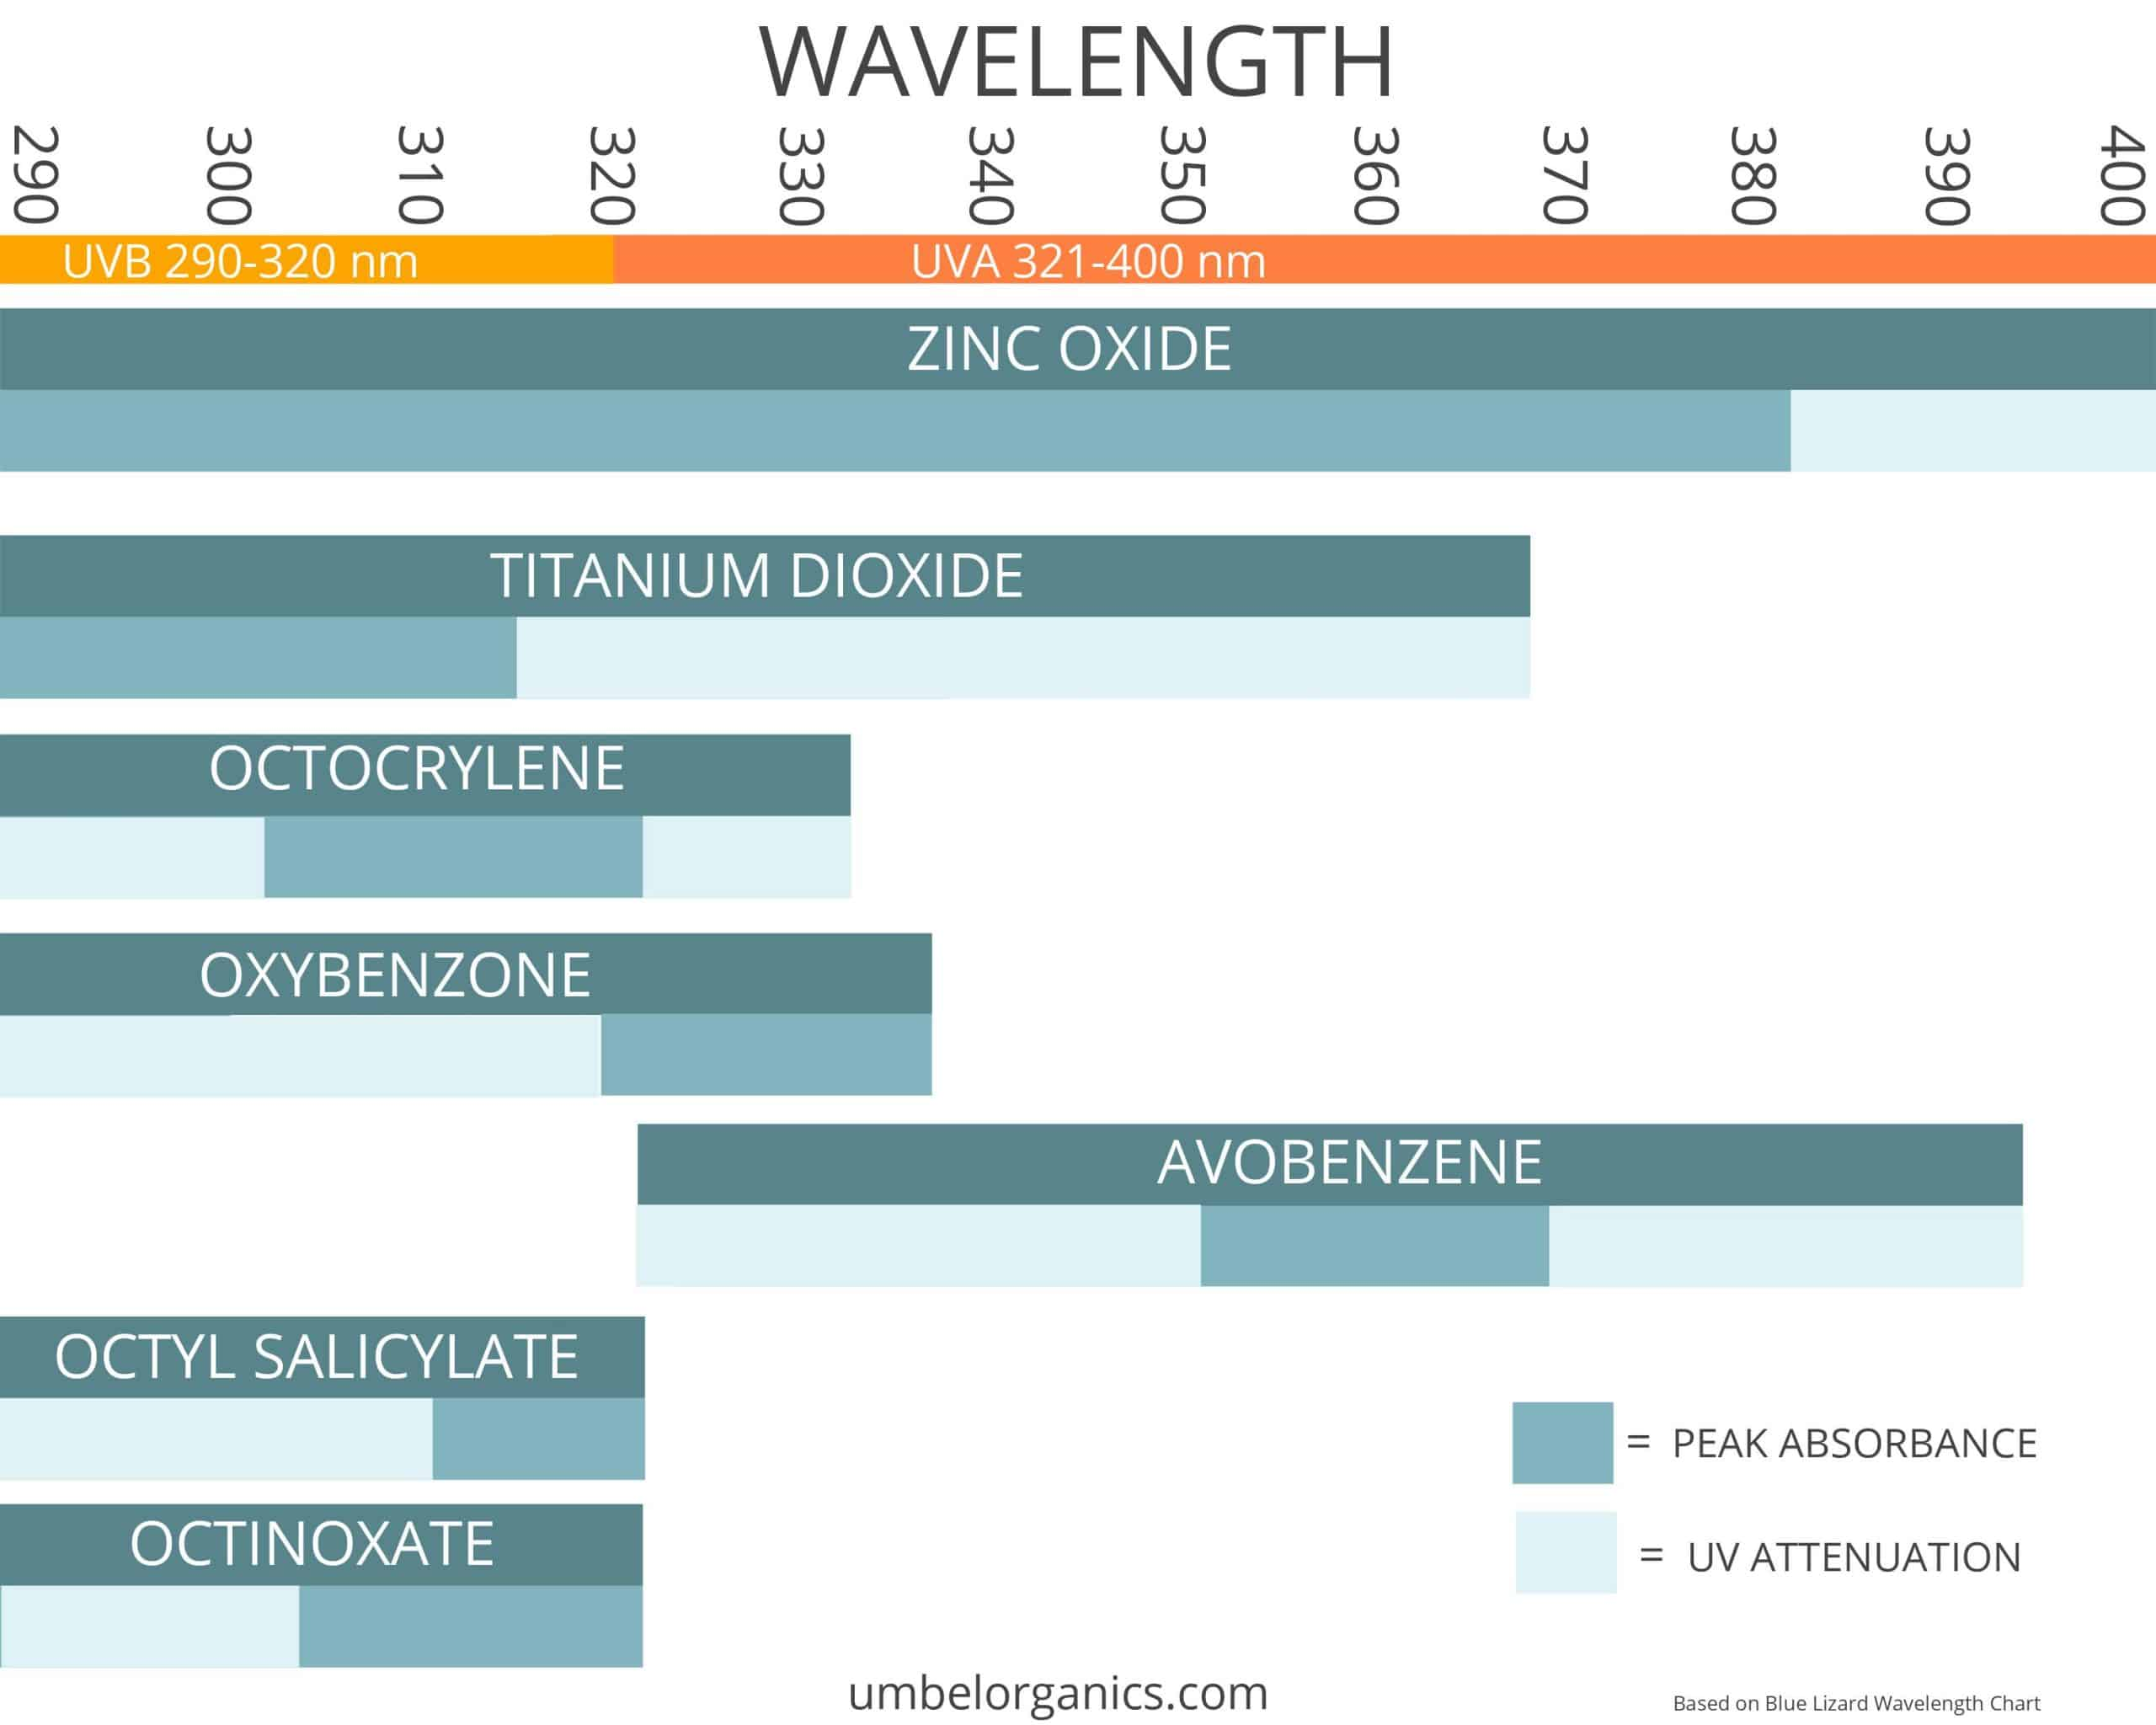 wavelength chart for sunscreen ingredients